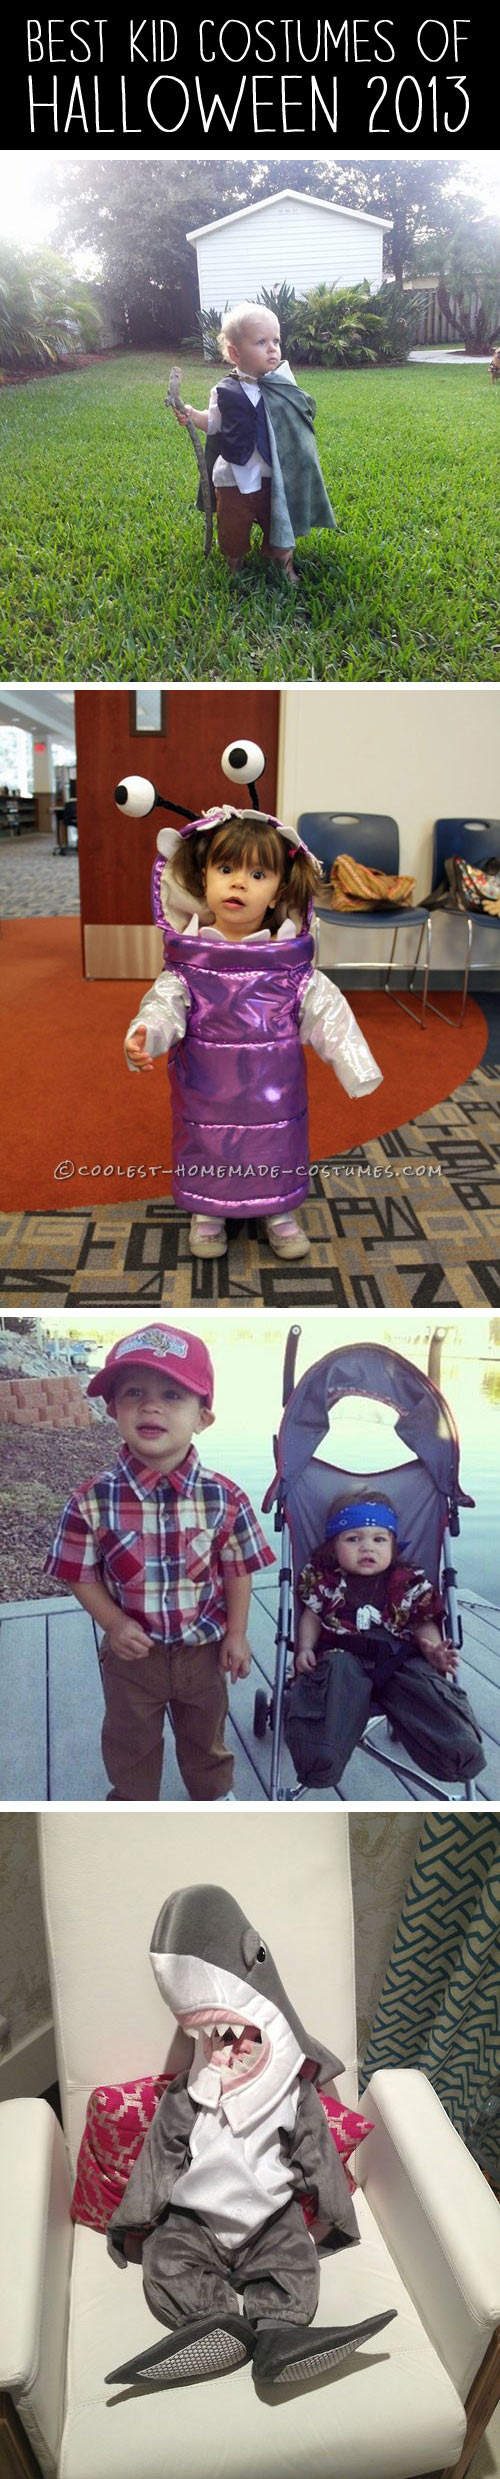 Kid costumes for Halloween...